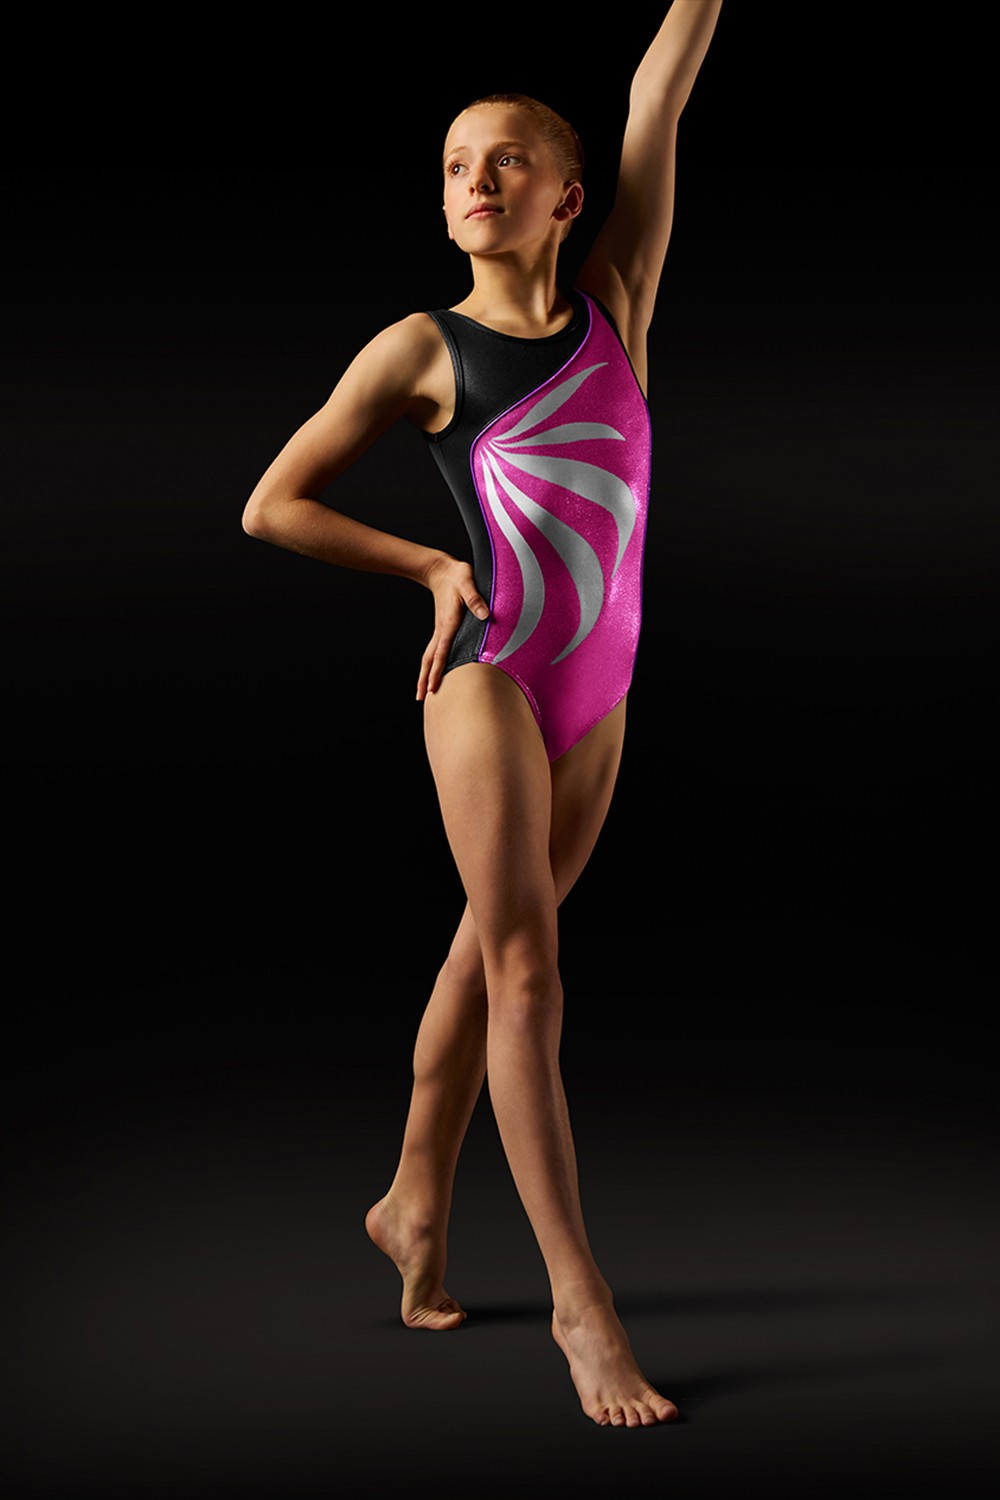 Tank Trikot Mit Einem Flammen-design Women's Gymnastics Leotards